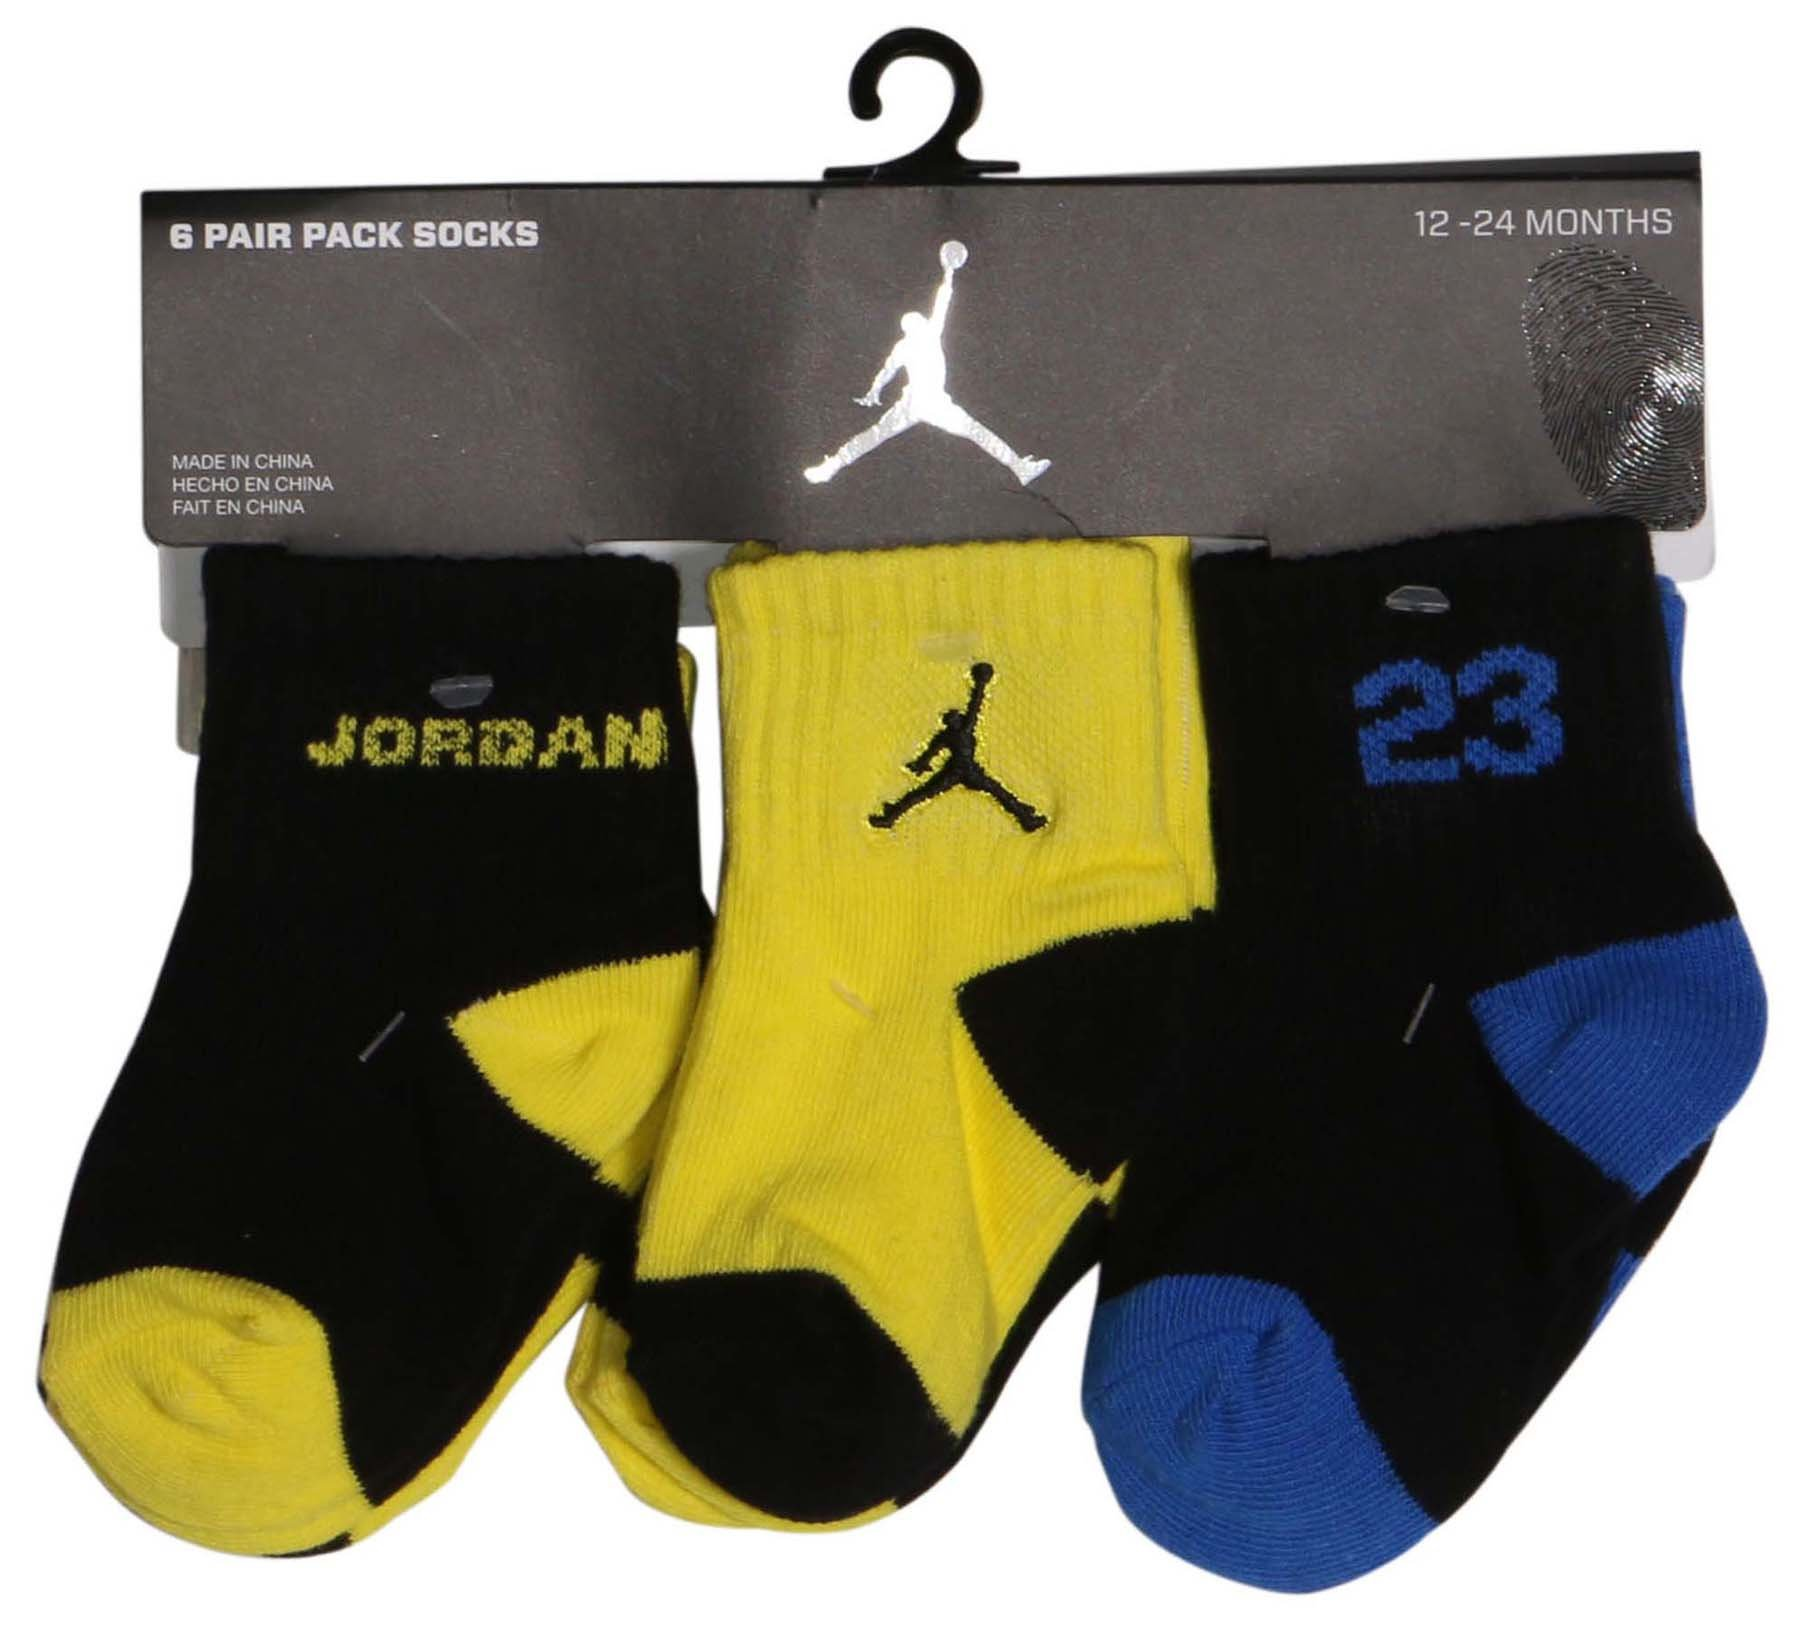 Jordan Jumpman 23 Baby Boys' 6-pair Quarter Crew Socks (12-24 Months, Blue/Yellow)